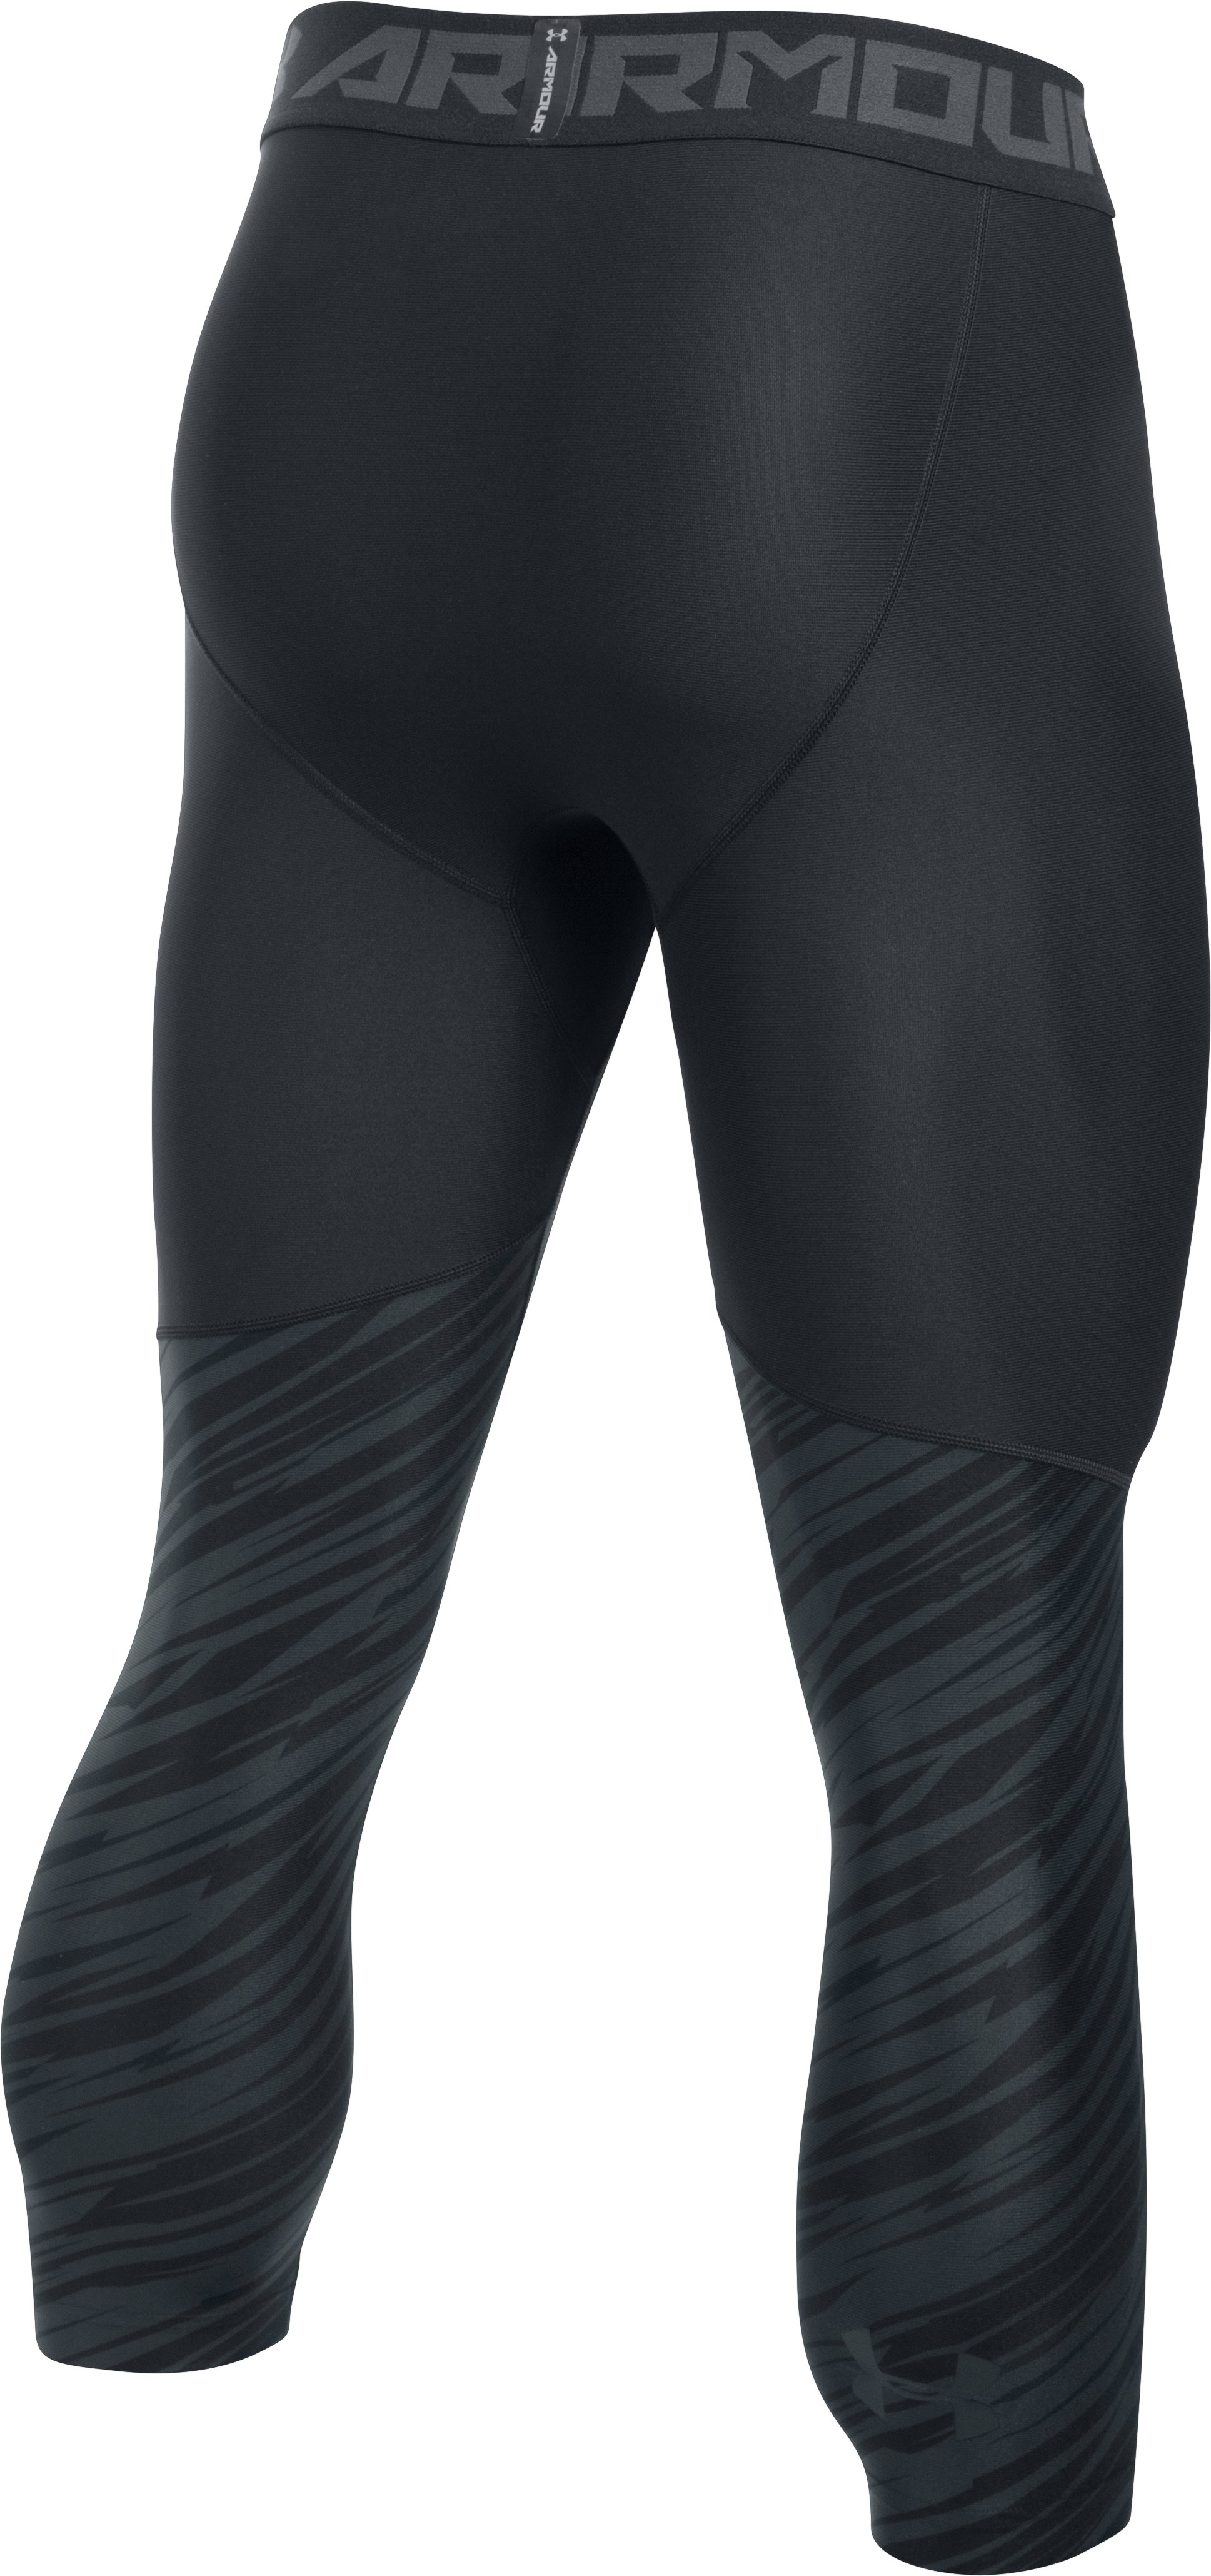 Men's HeatGear® Armour Football Printed ¾ Leggings, Black ,